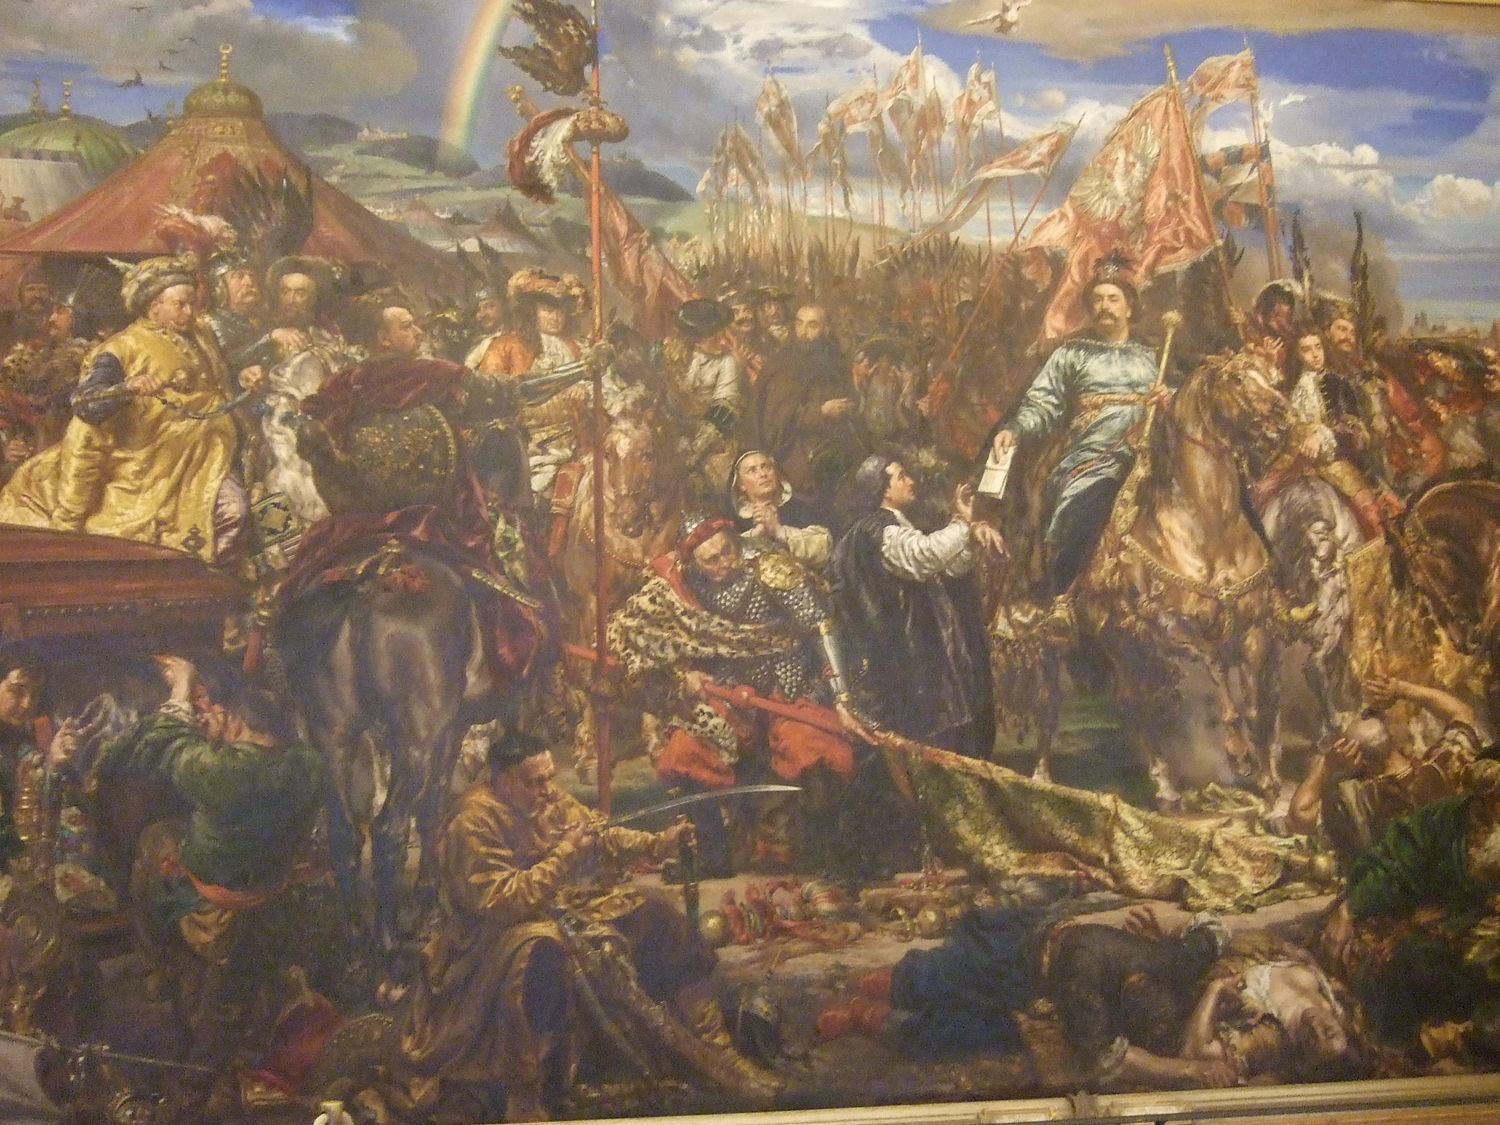 The Vatican City Museum. the painting of John III Sobieski victory against Turks in Vienna battle